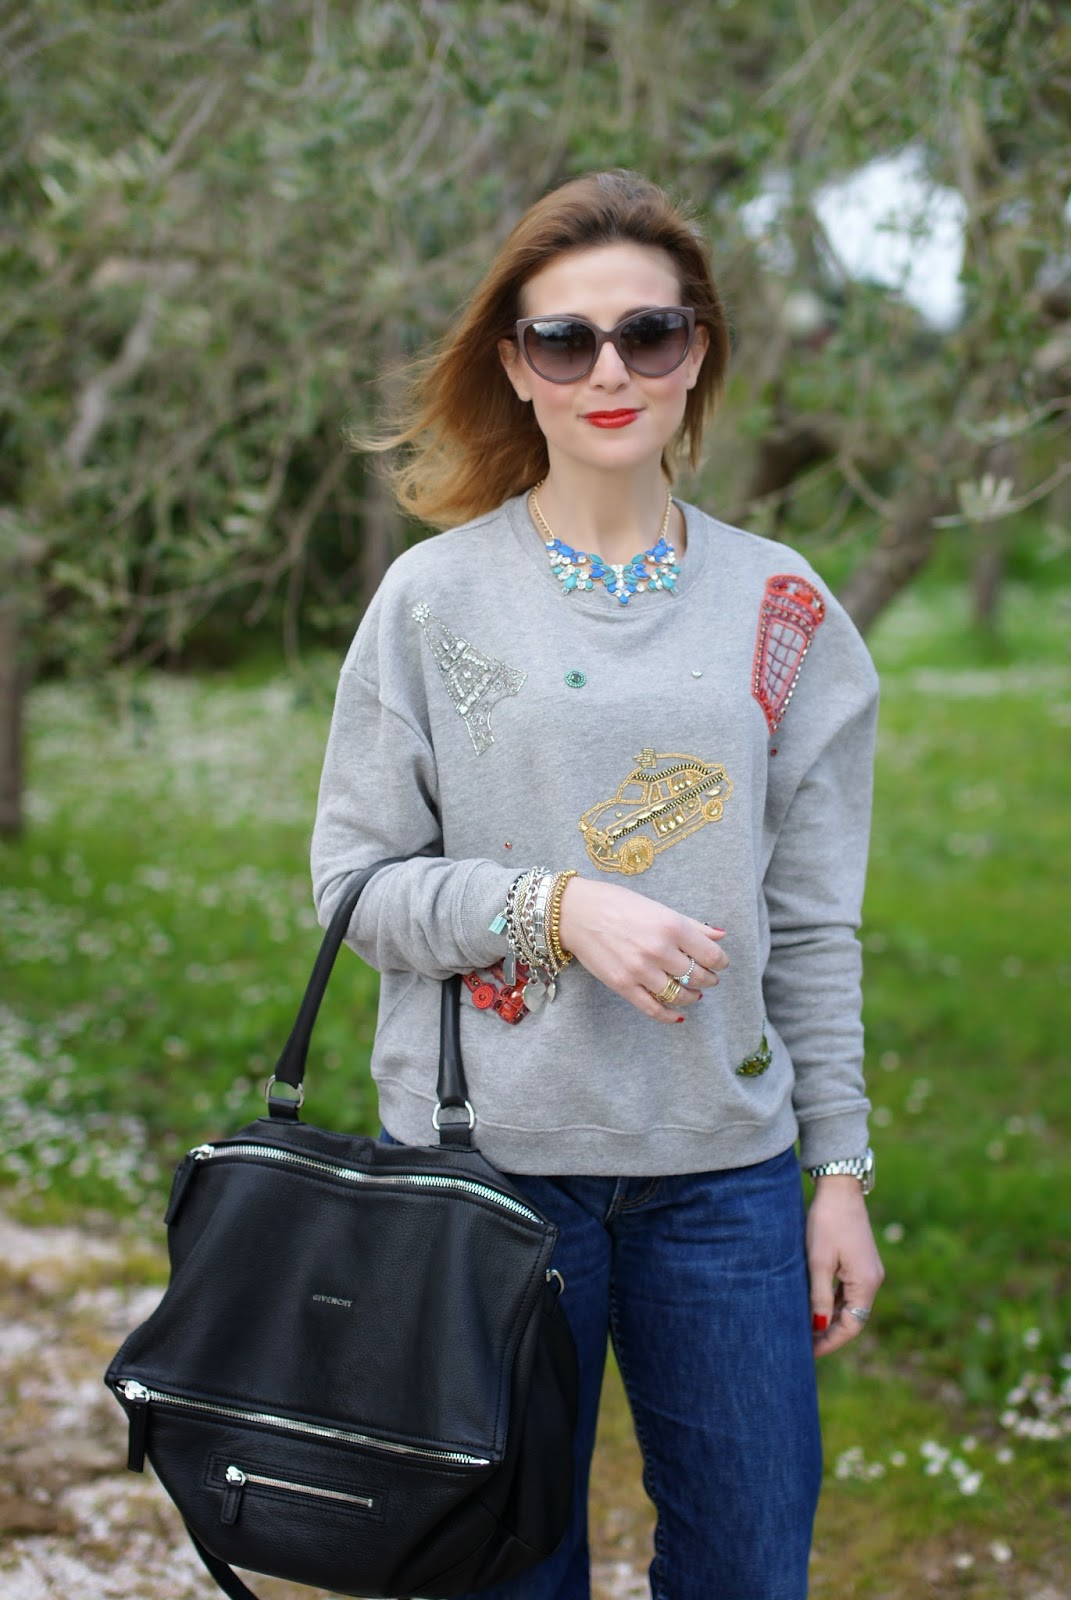 Givenchy Pandora grande, Zara embroidered sweatshirt, Fashion and Cookies, fashion blogger